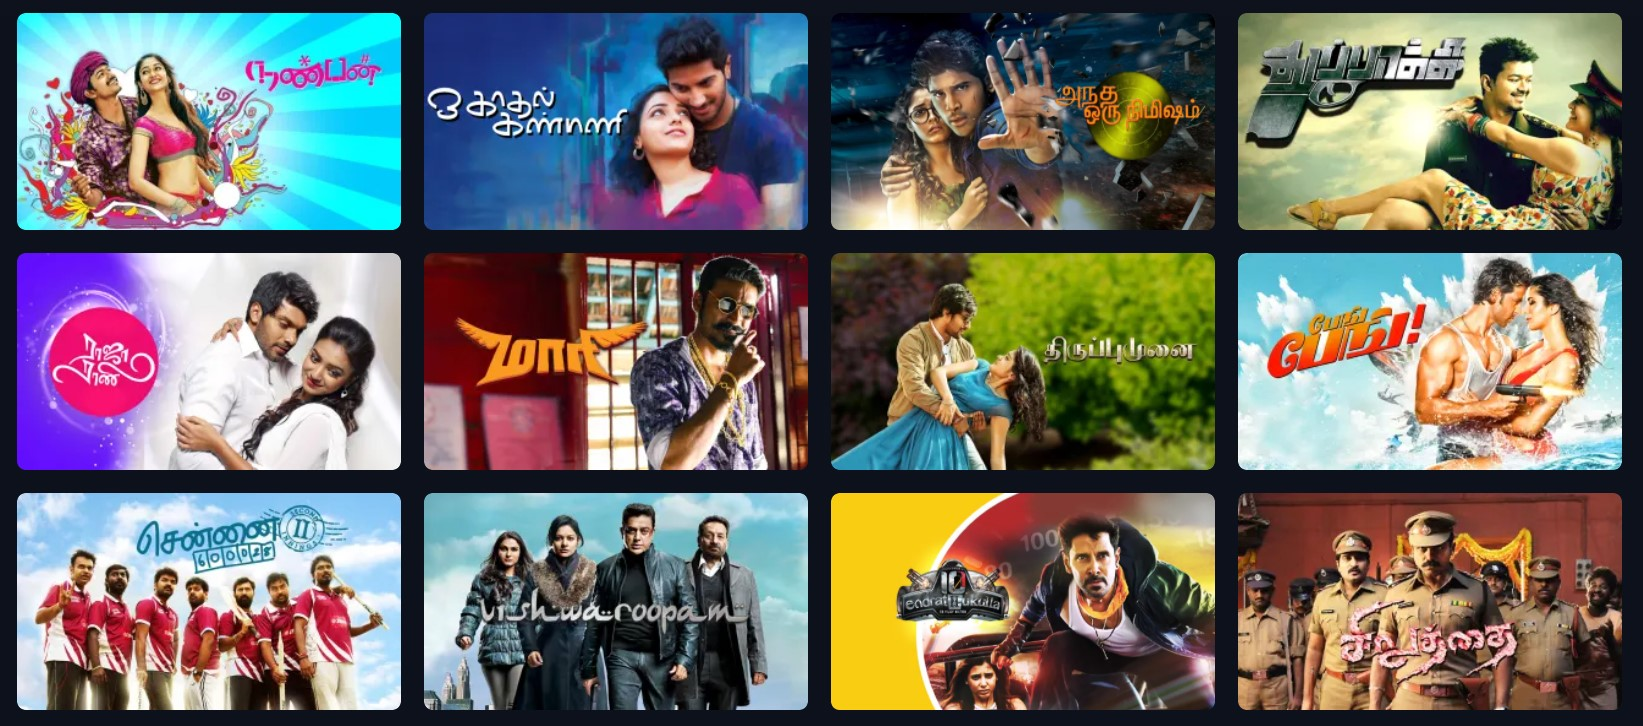 Movie rulz leaks pirated HD Bollywood, Hollywood Movies Free Download 360p,  720p, and 1080p